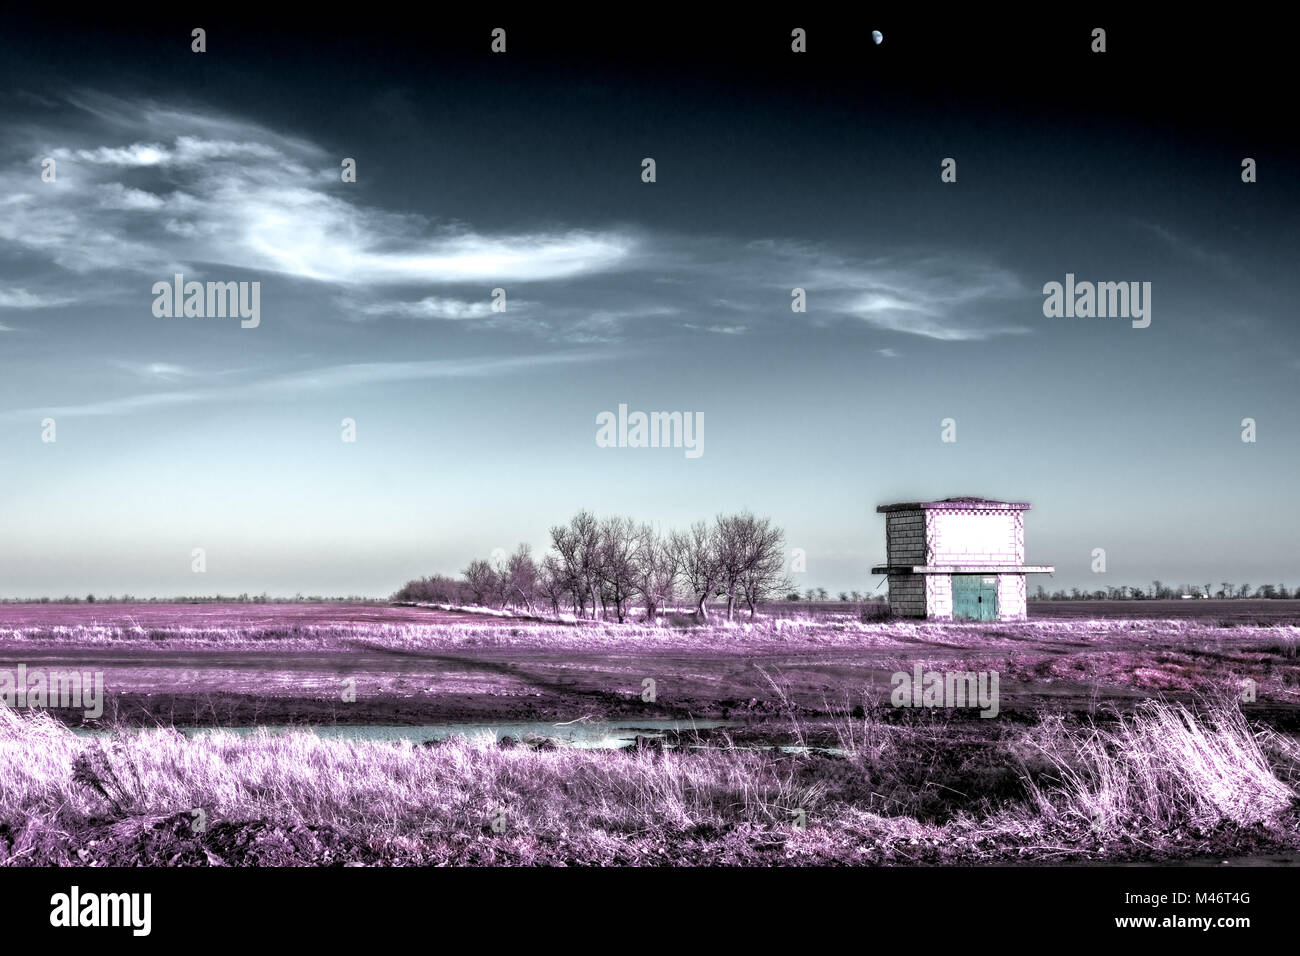 Transforming substation and the moon in the winter sky in infrared colors. Post-apocalyptic infrared landscape. - Stock Image